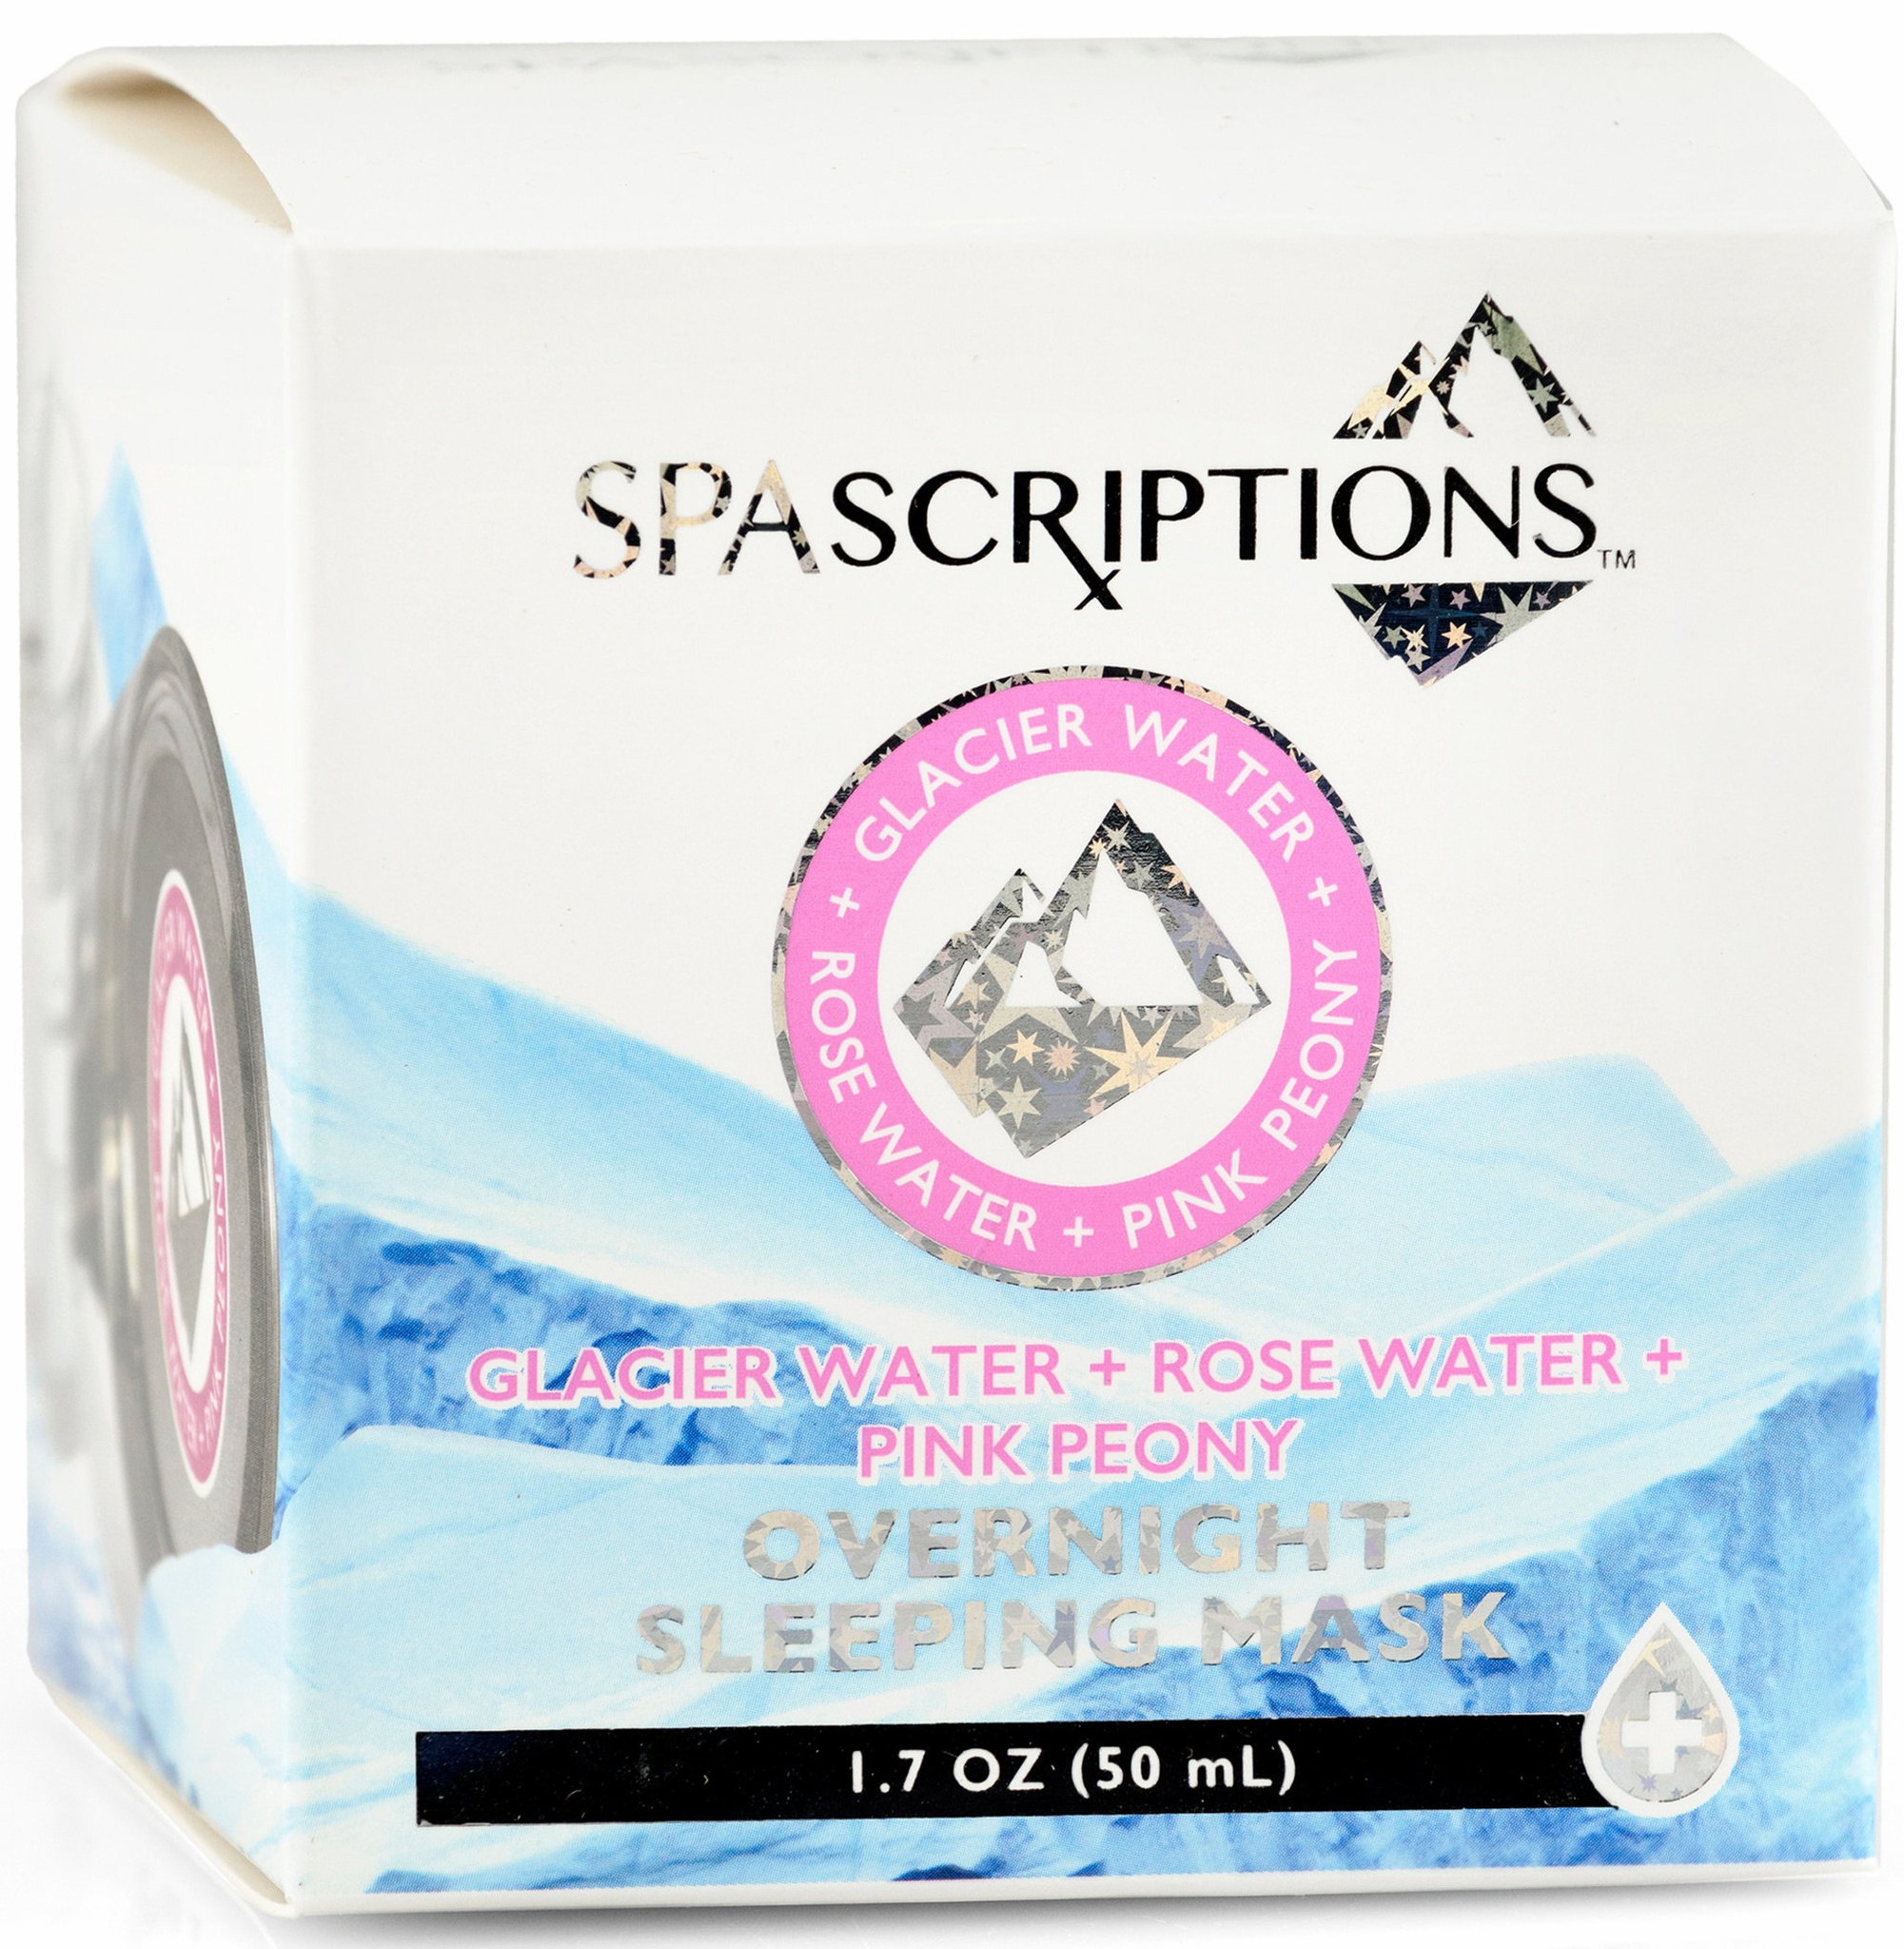 Spascriptions Glacier & Rose Water With Pink Peony Sleeping Mask